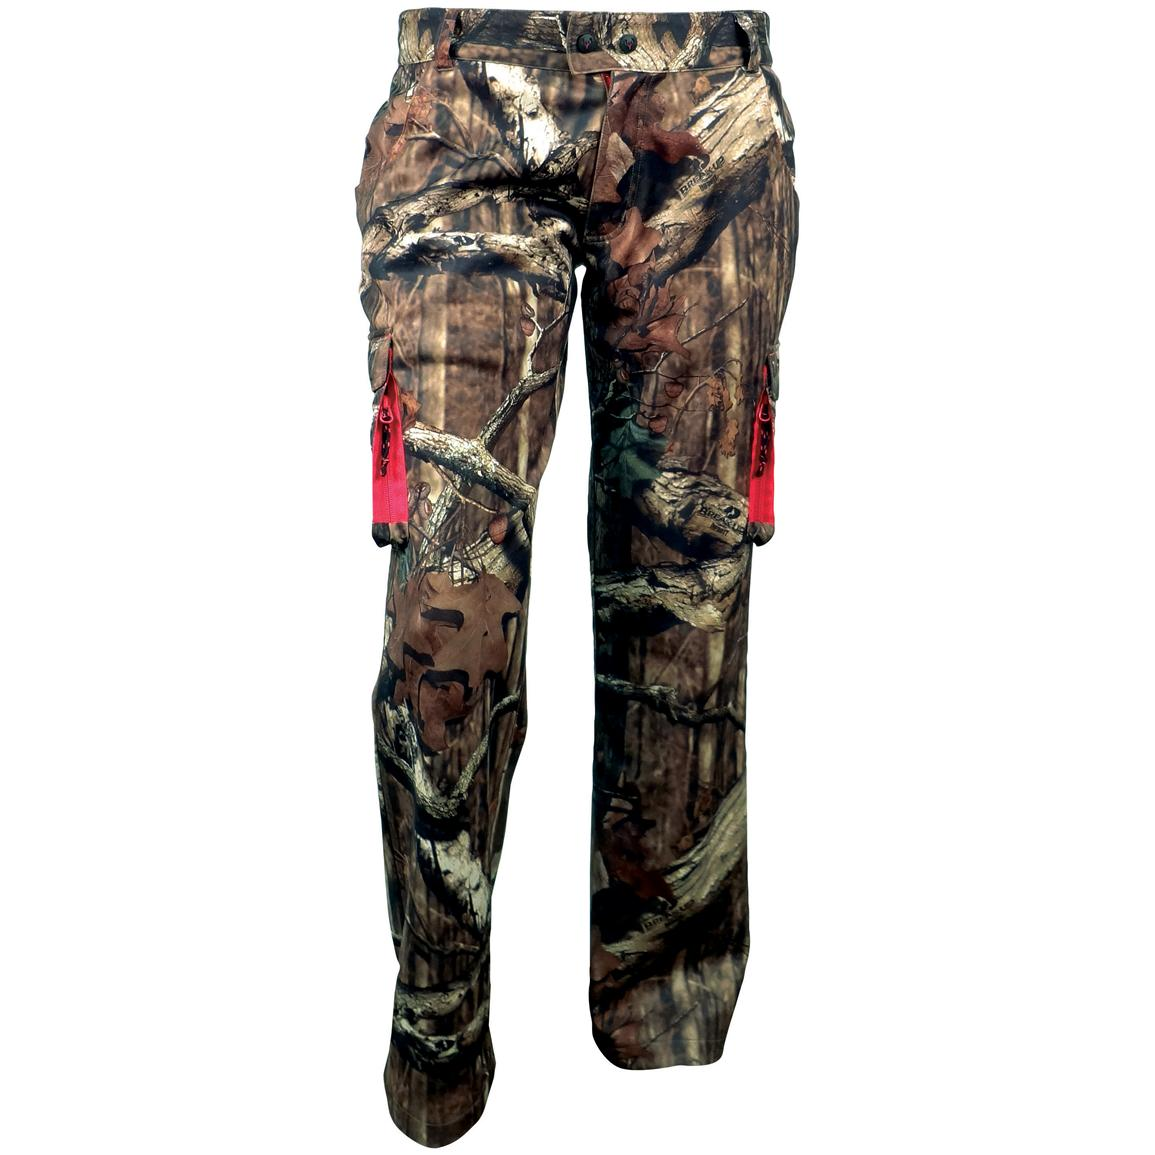 Simple True Religion Camo Pants Womens  Pants  Fashion Styles Ideas